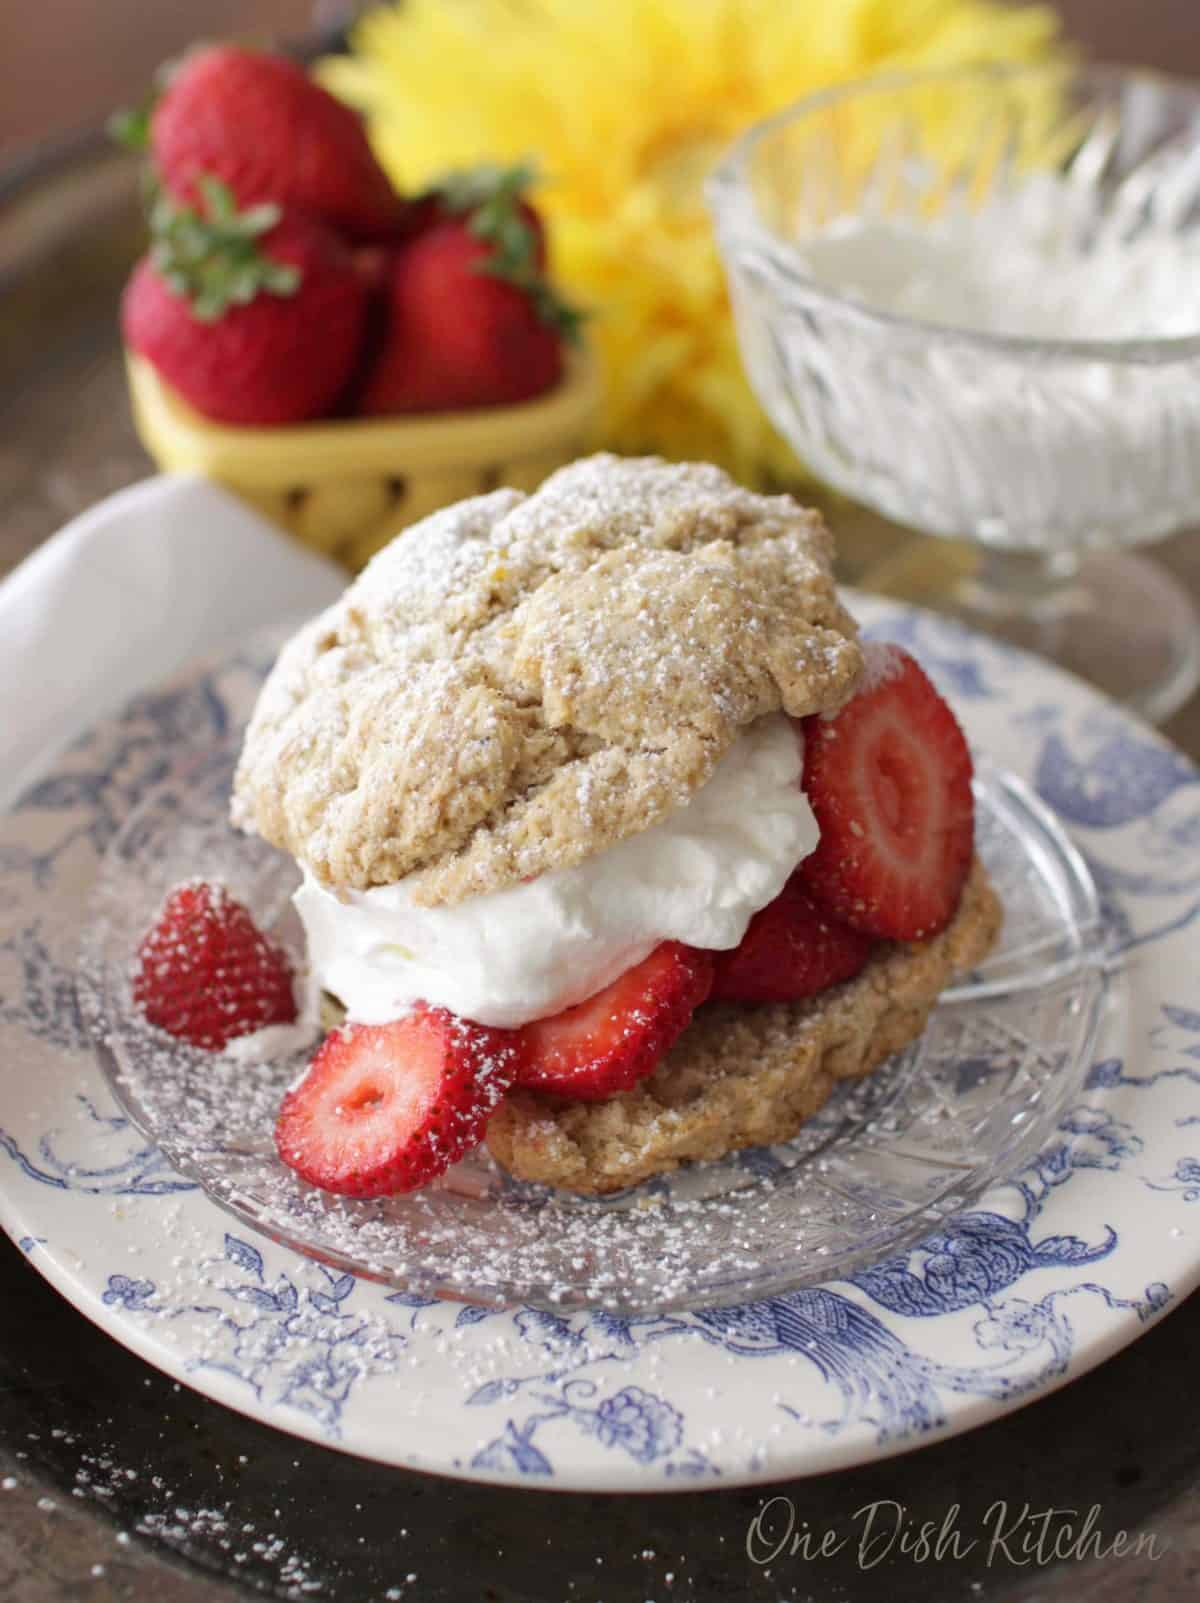 A strawberry shortcake filled with whipped cream and strawberries and dusted with powdered sugar on a plate with a bowl of whipped cream and a bowl of strawberries in the background.